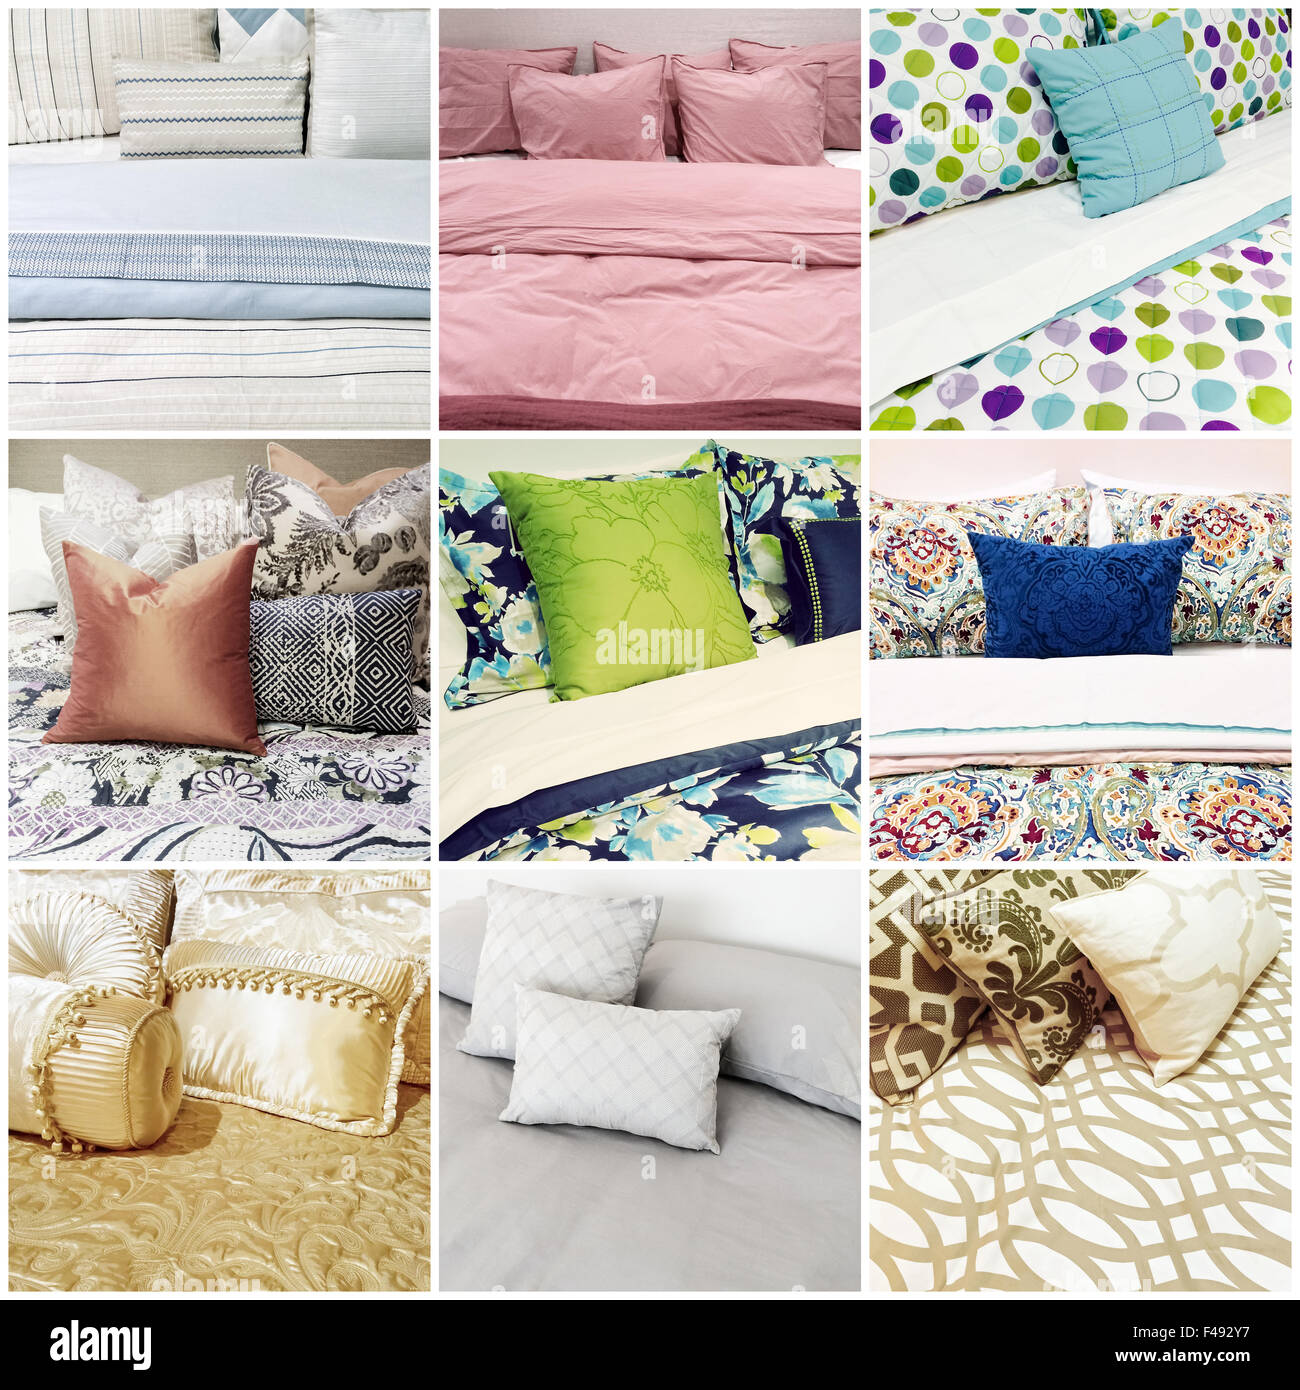 Beds with different styles of bed linen. Collage of nine photos. - Stock Image